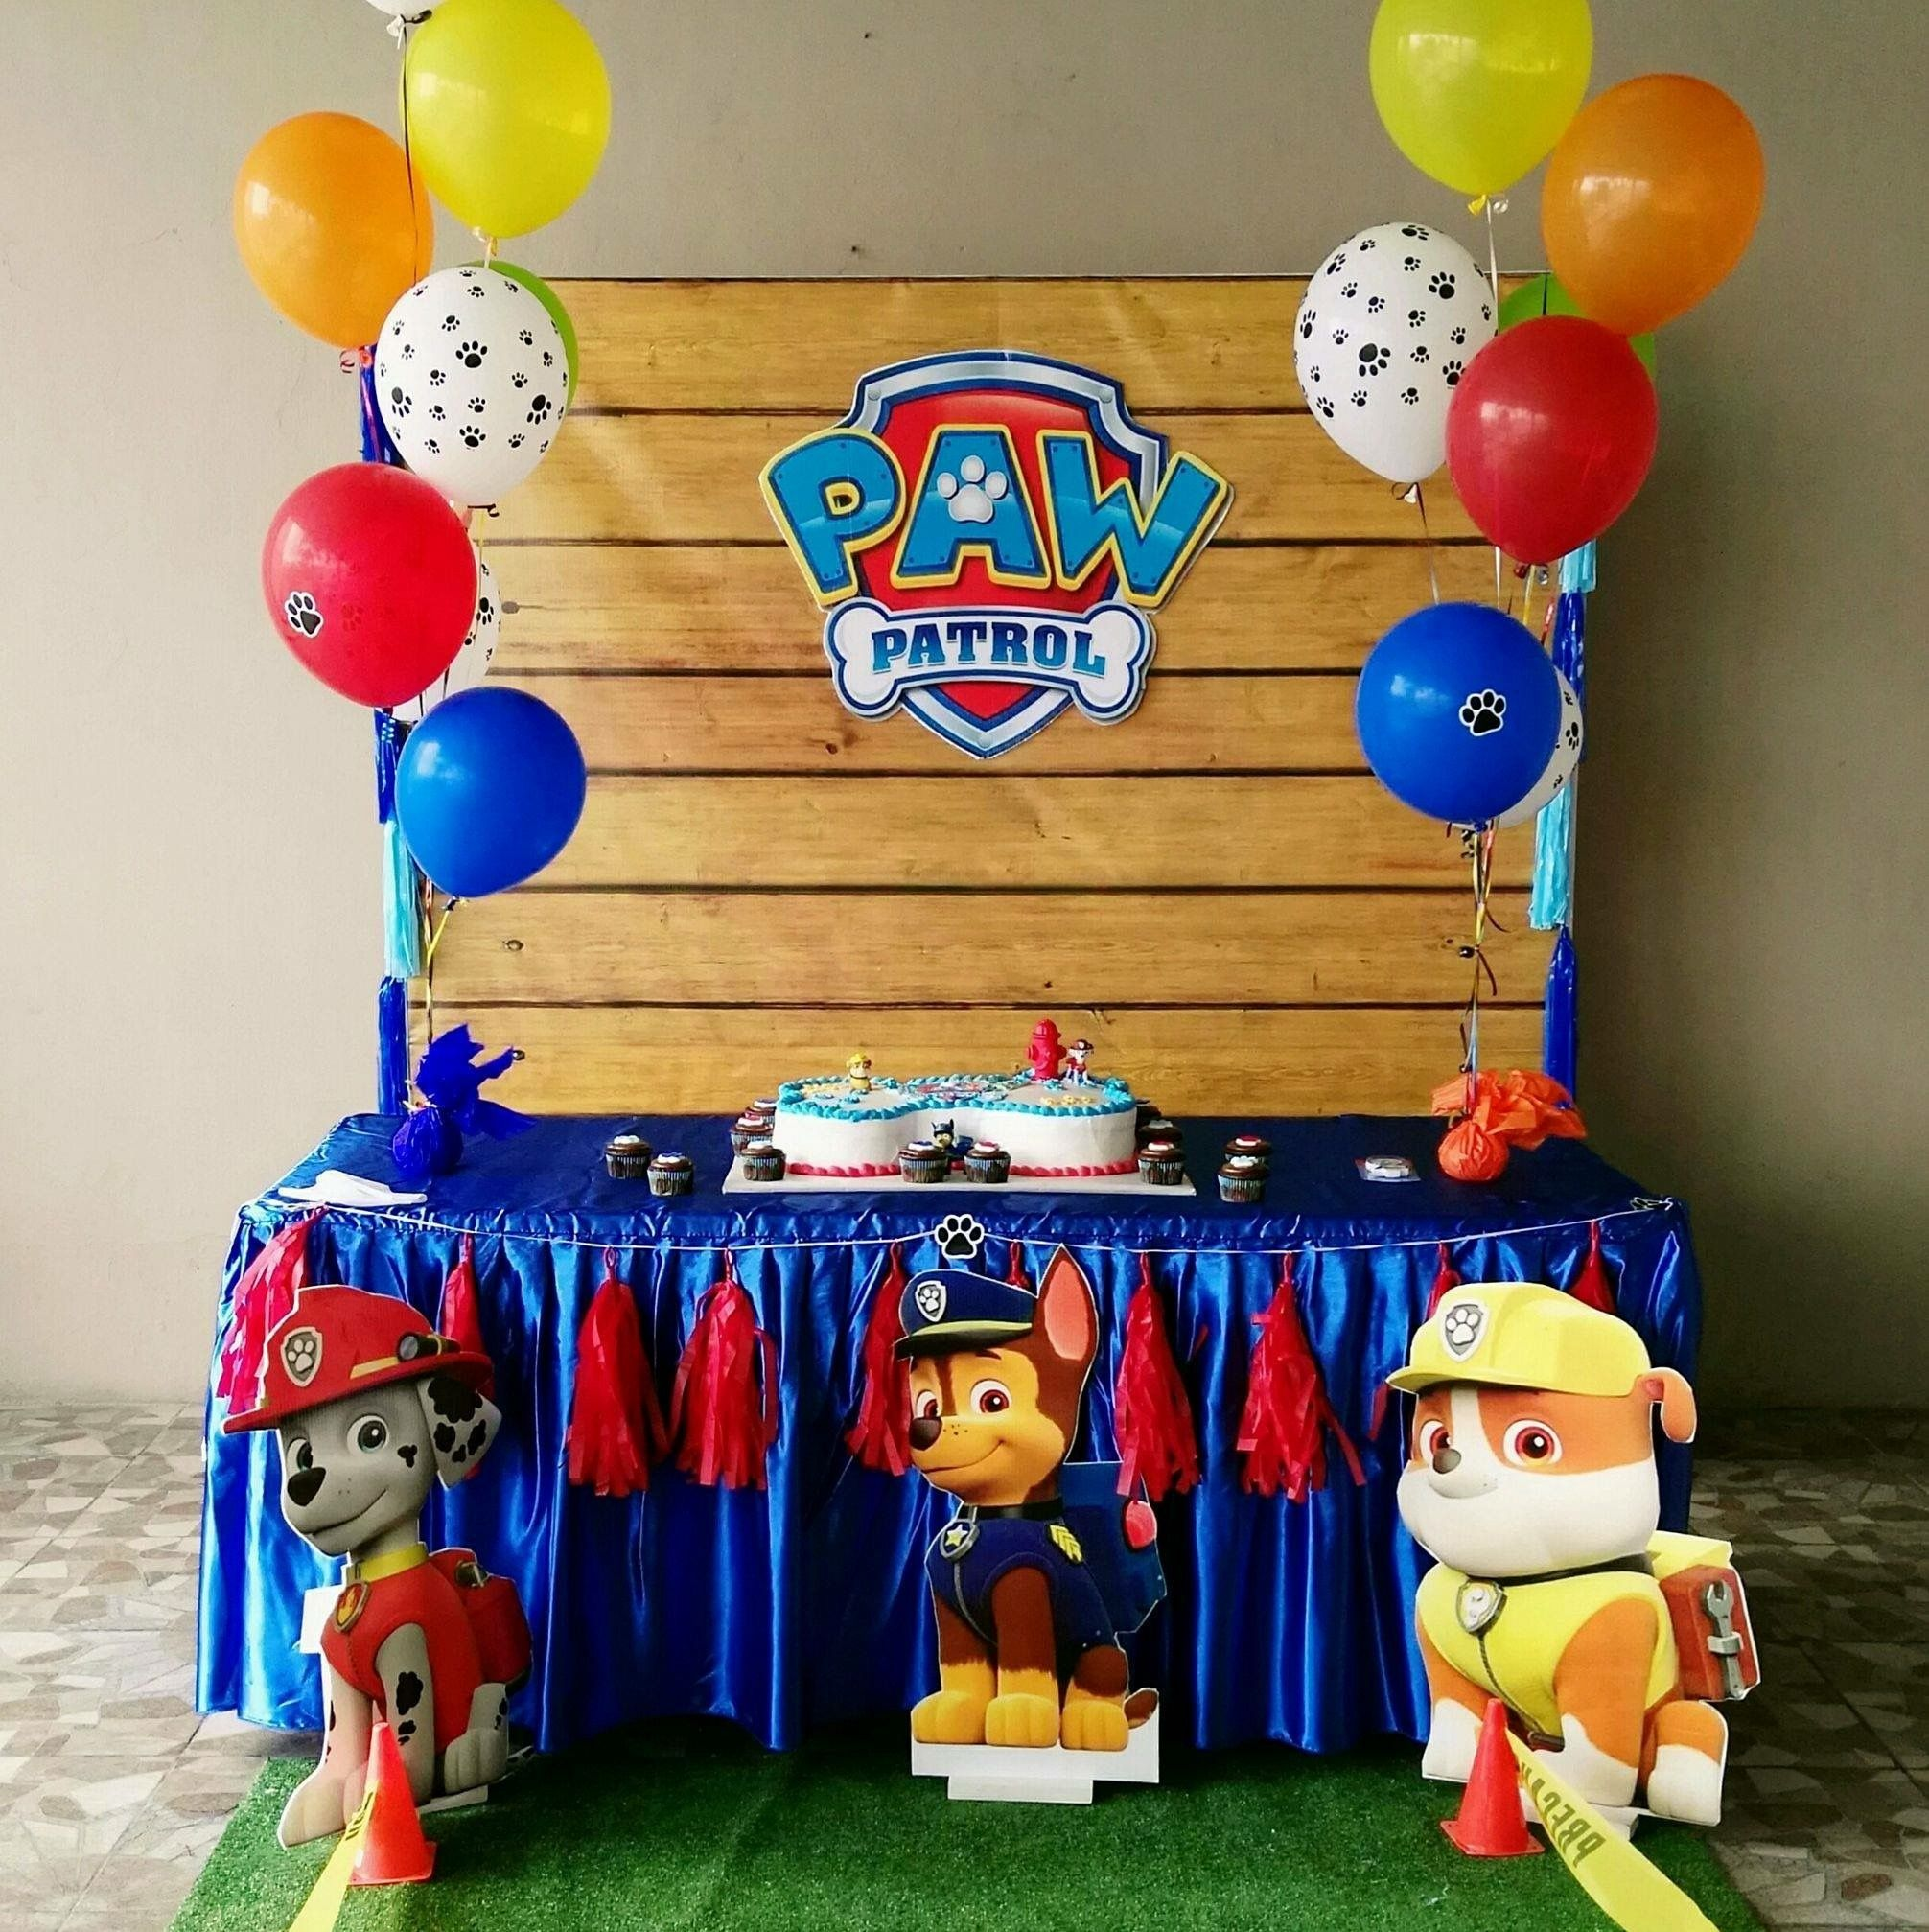 Paw Patrol Cake Table Set Up Paw Patrol Party Decorations Paw